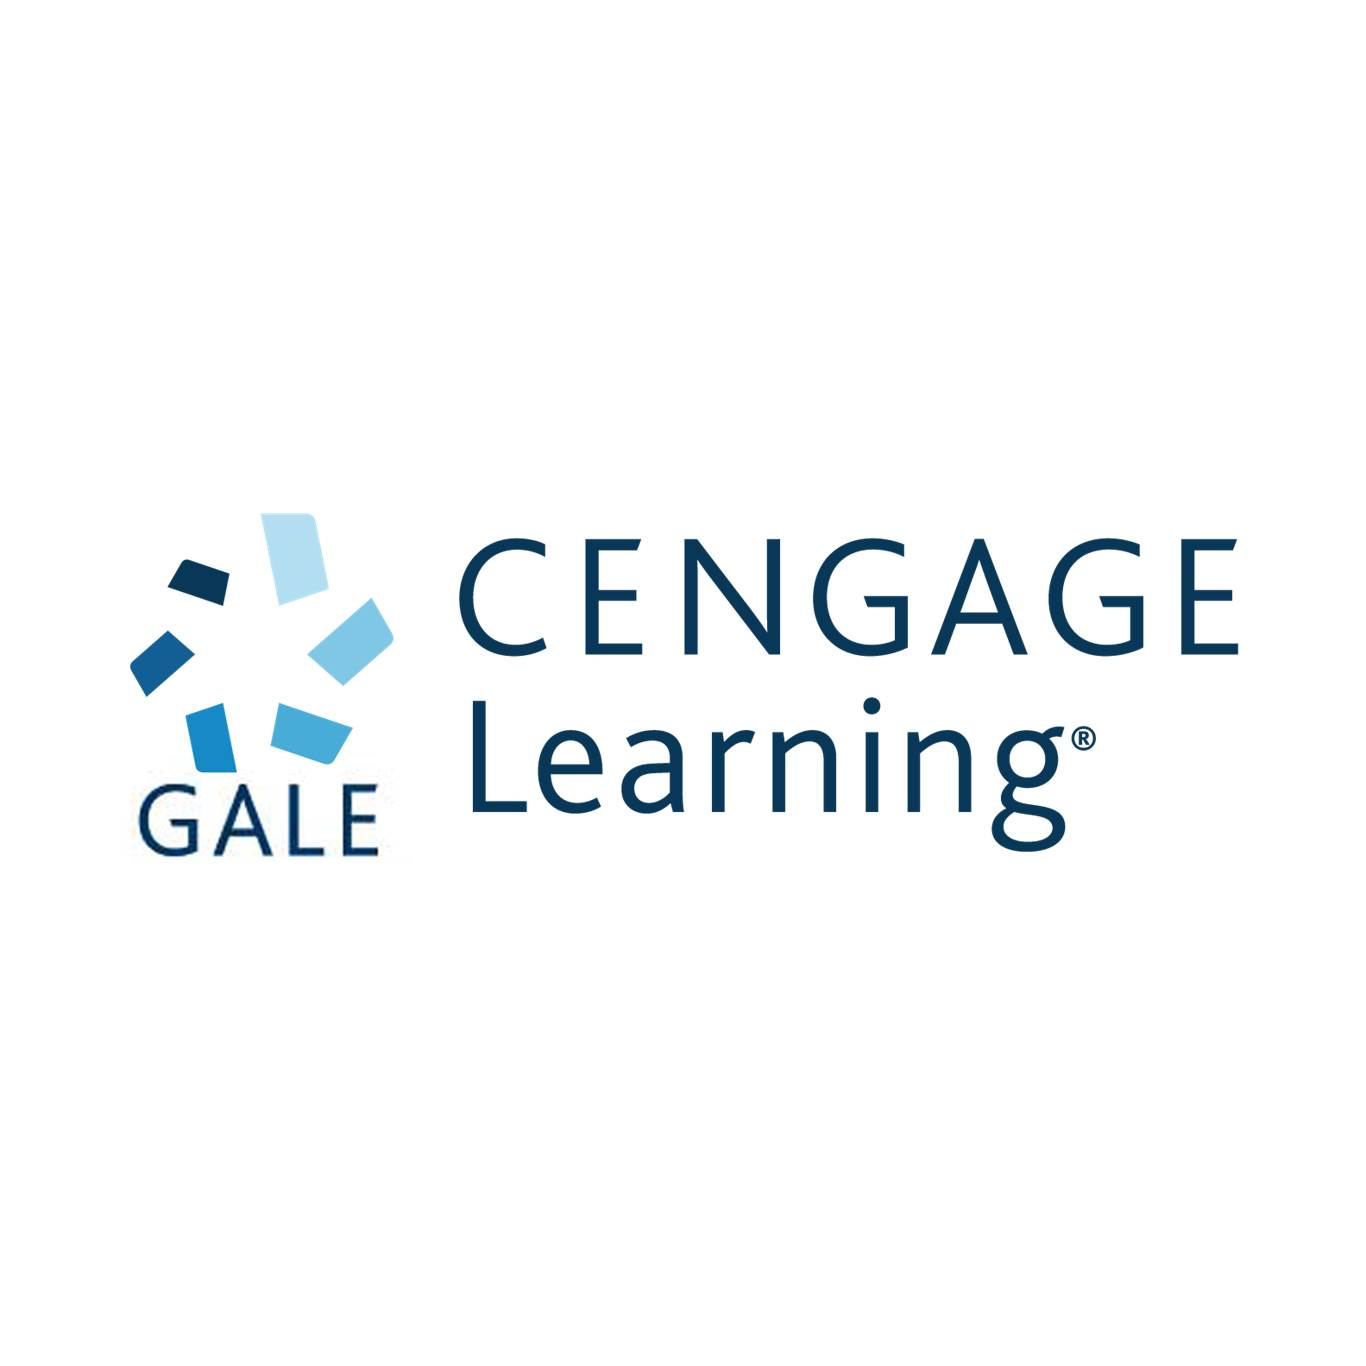 Trial access for Gale Scholar